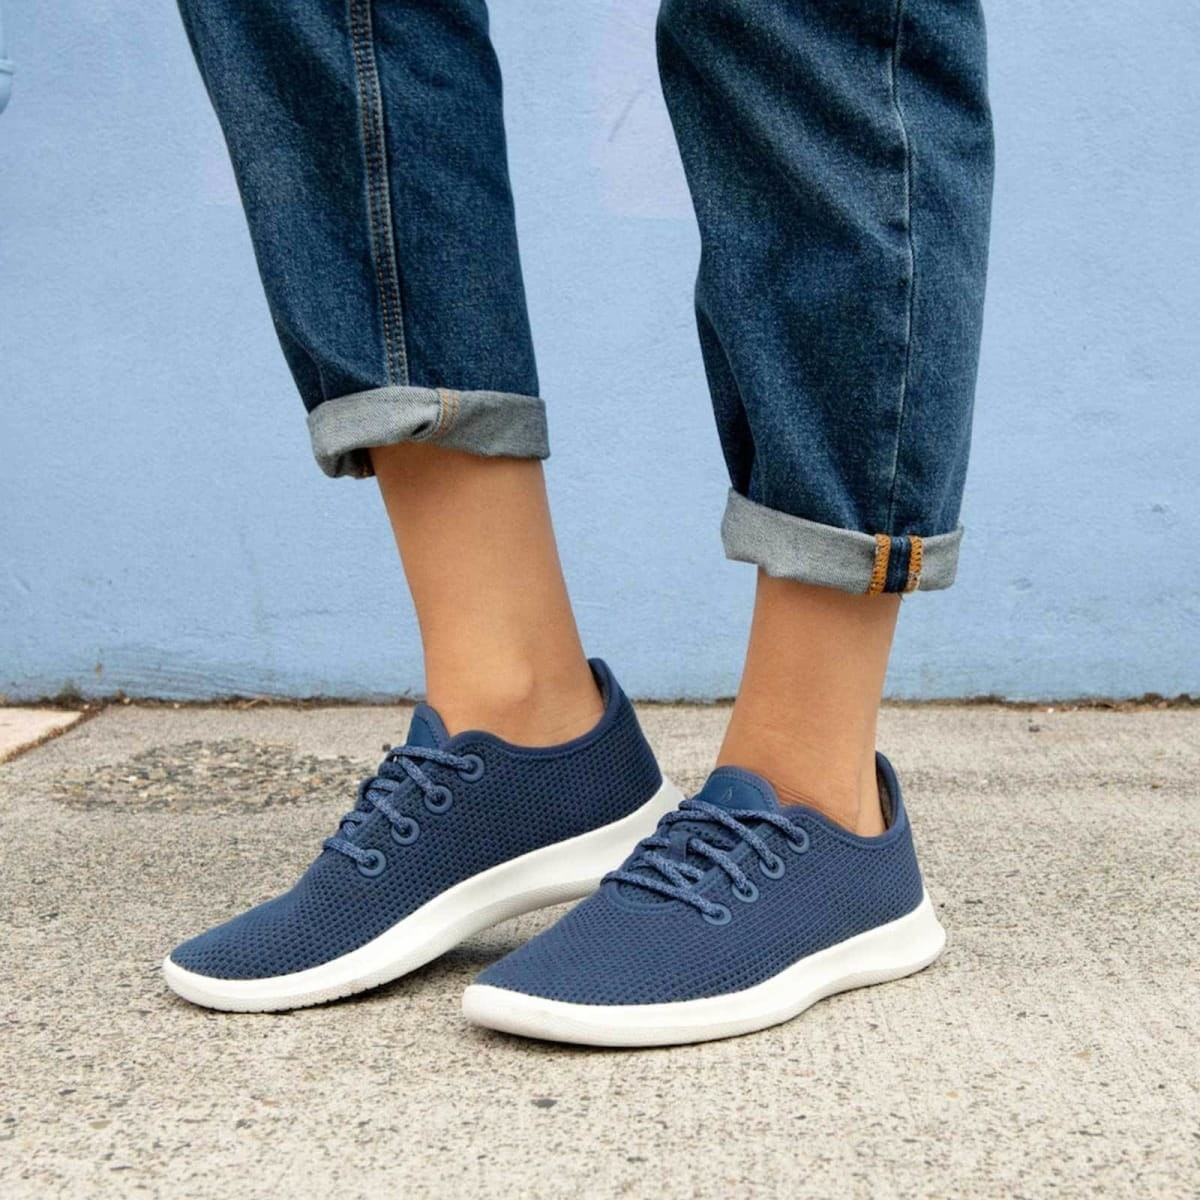 Model wearing the knit sneakers in blue with blue laces and white soles